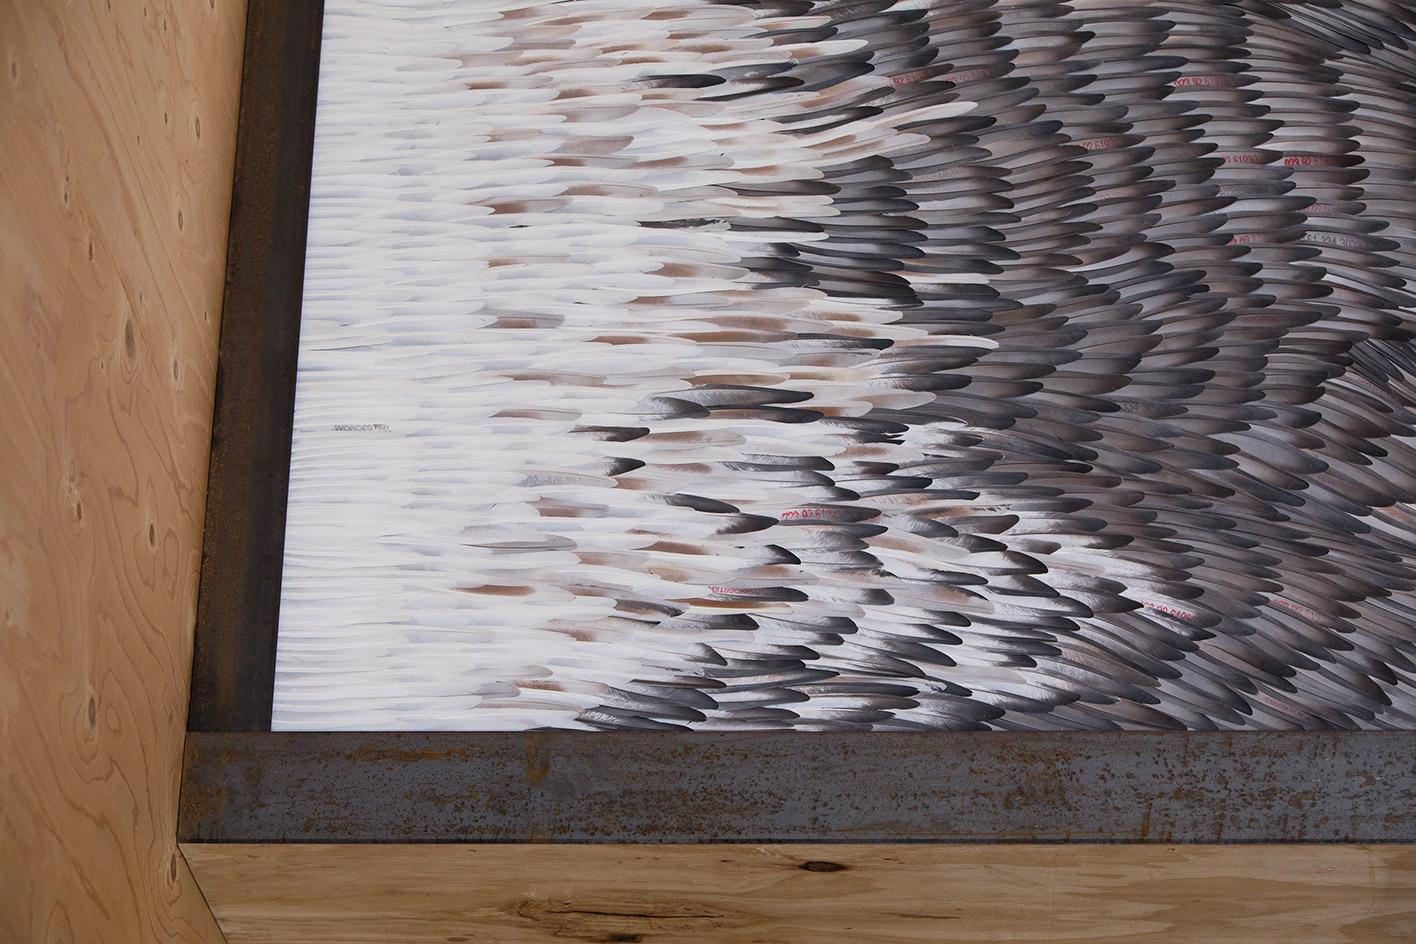 Kate MccGwire immerses Victorian dovecote with feathers